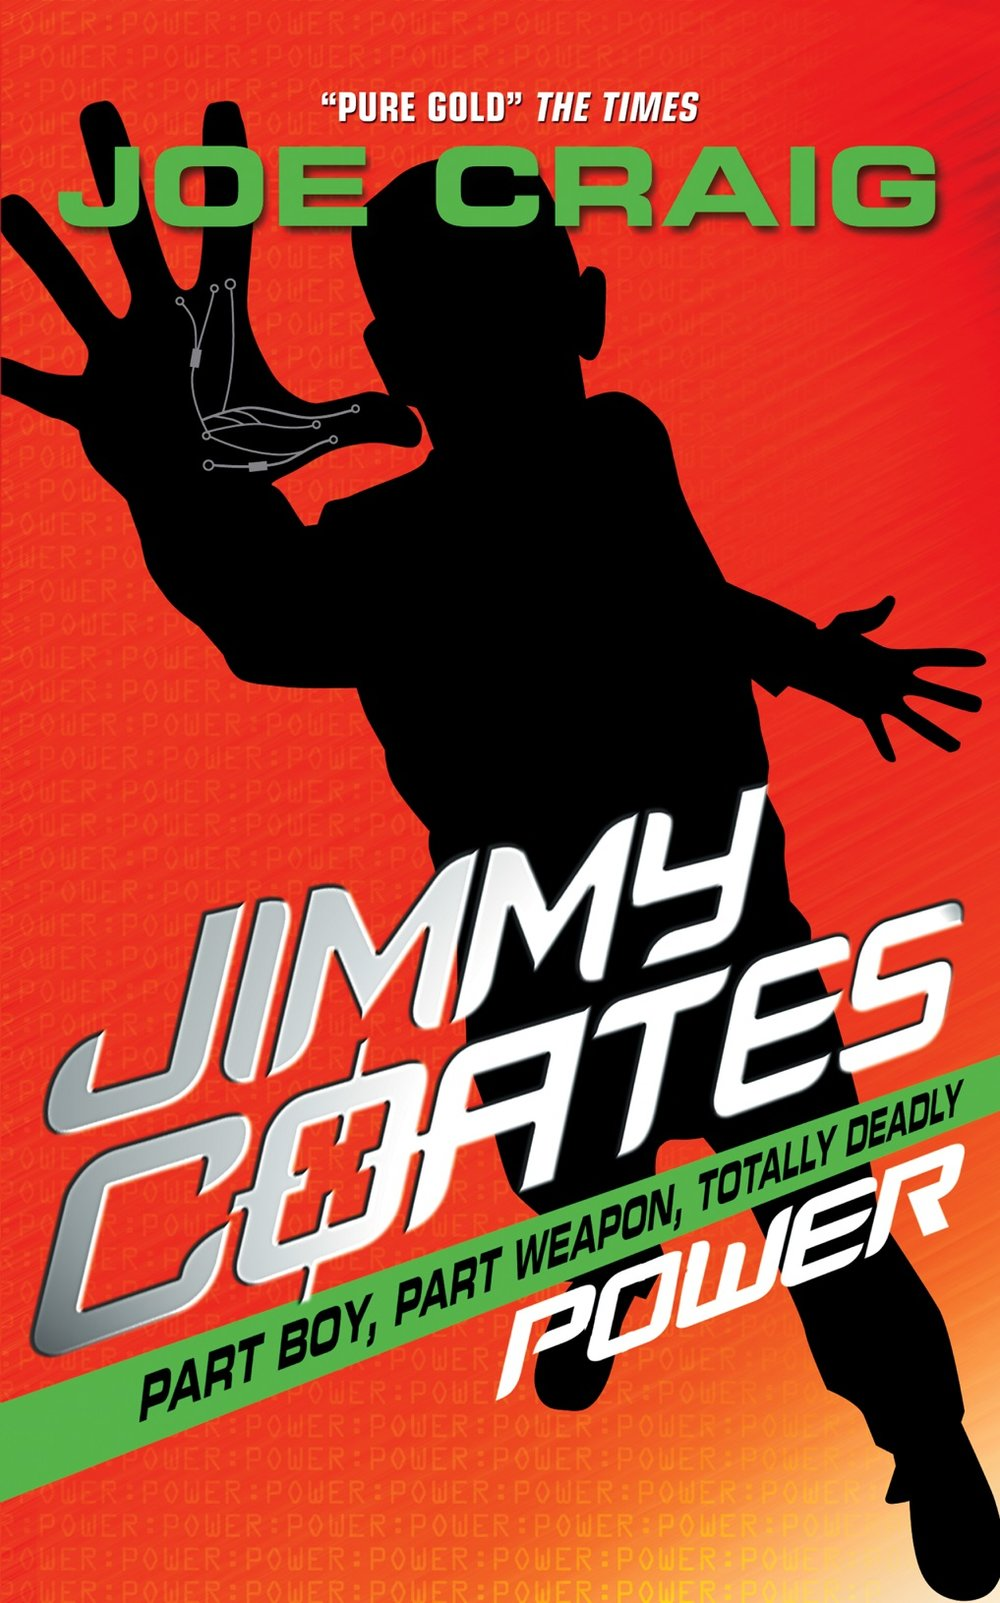 Book 6. Jimmy's country is under attack. His body is poisoned. With time running out, he discovers what some people will do for power - and what he must do to stop them…